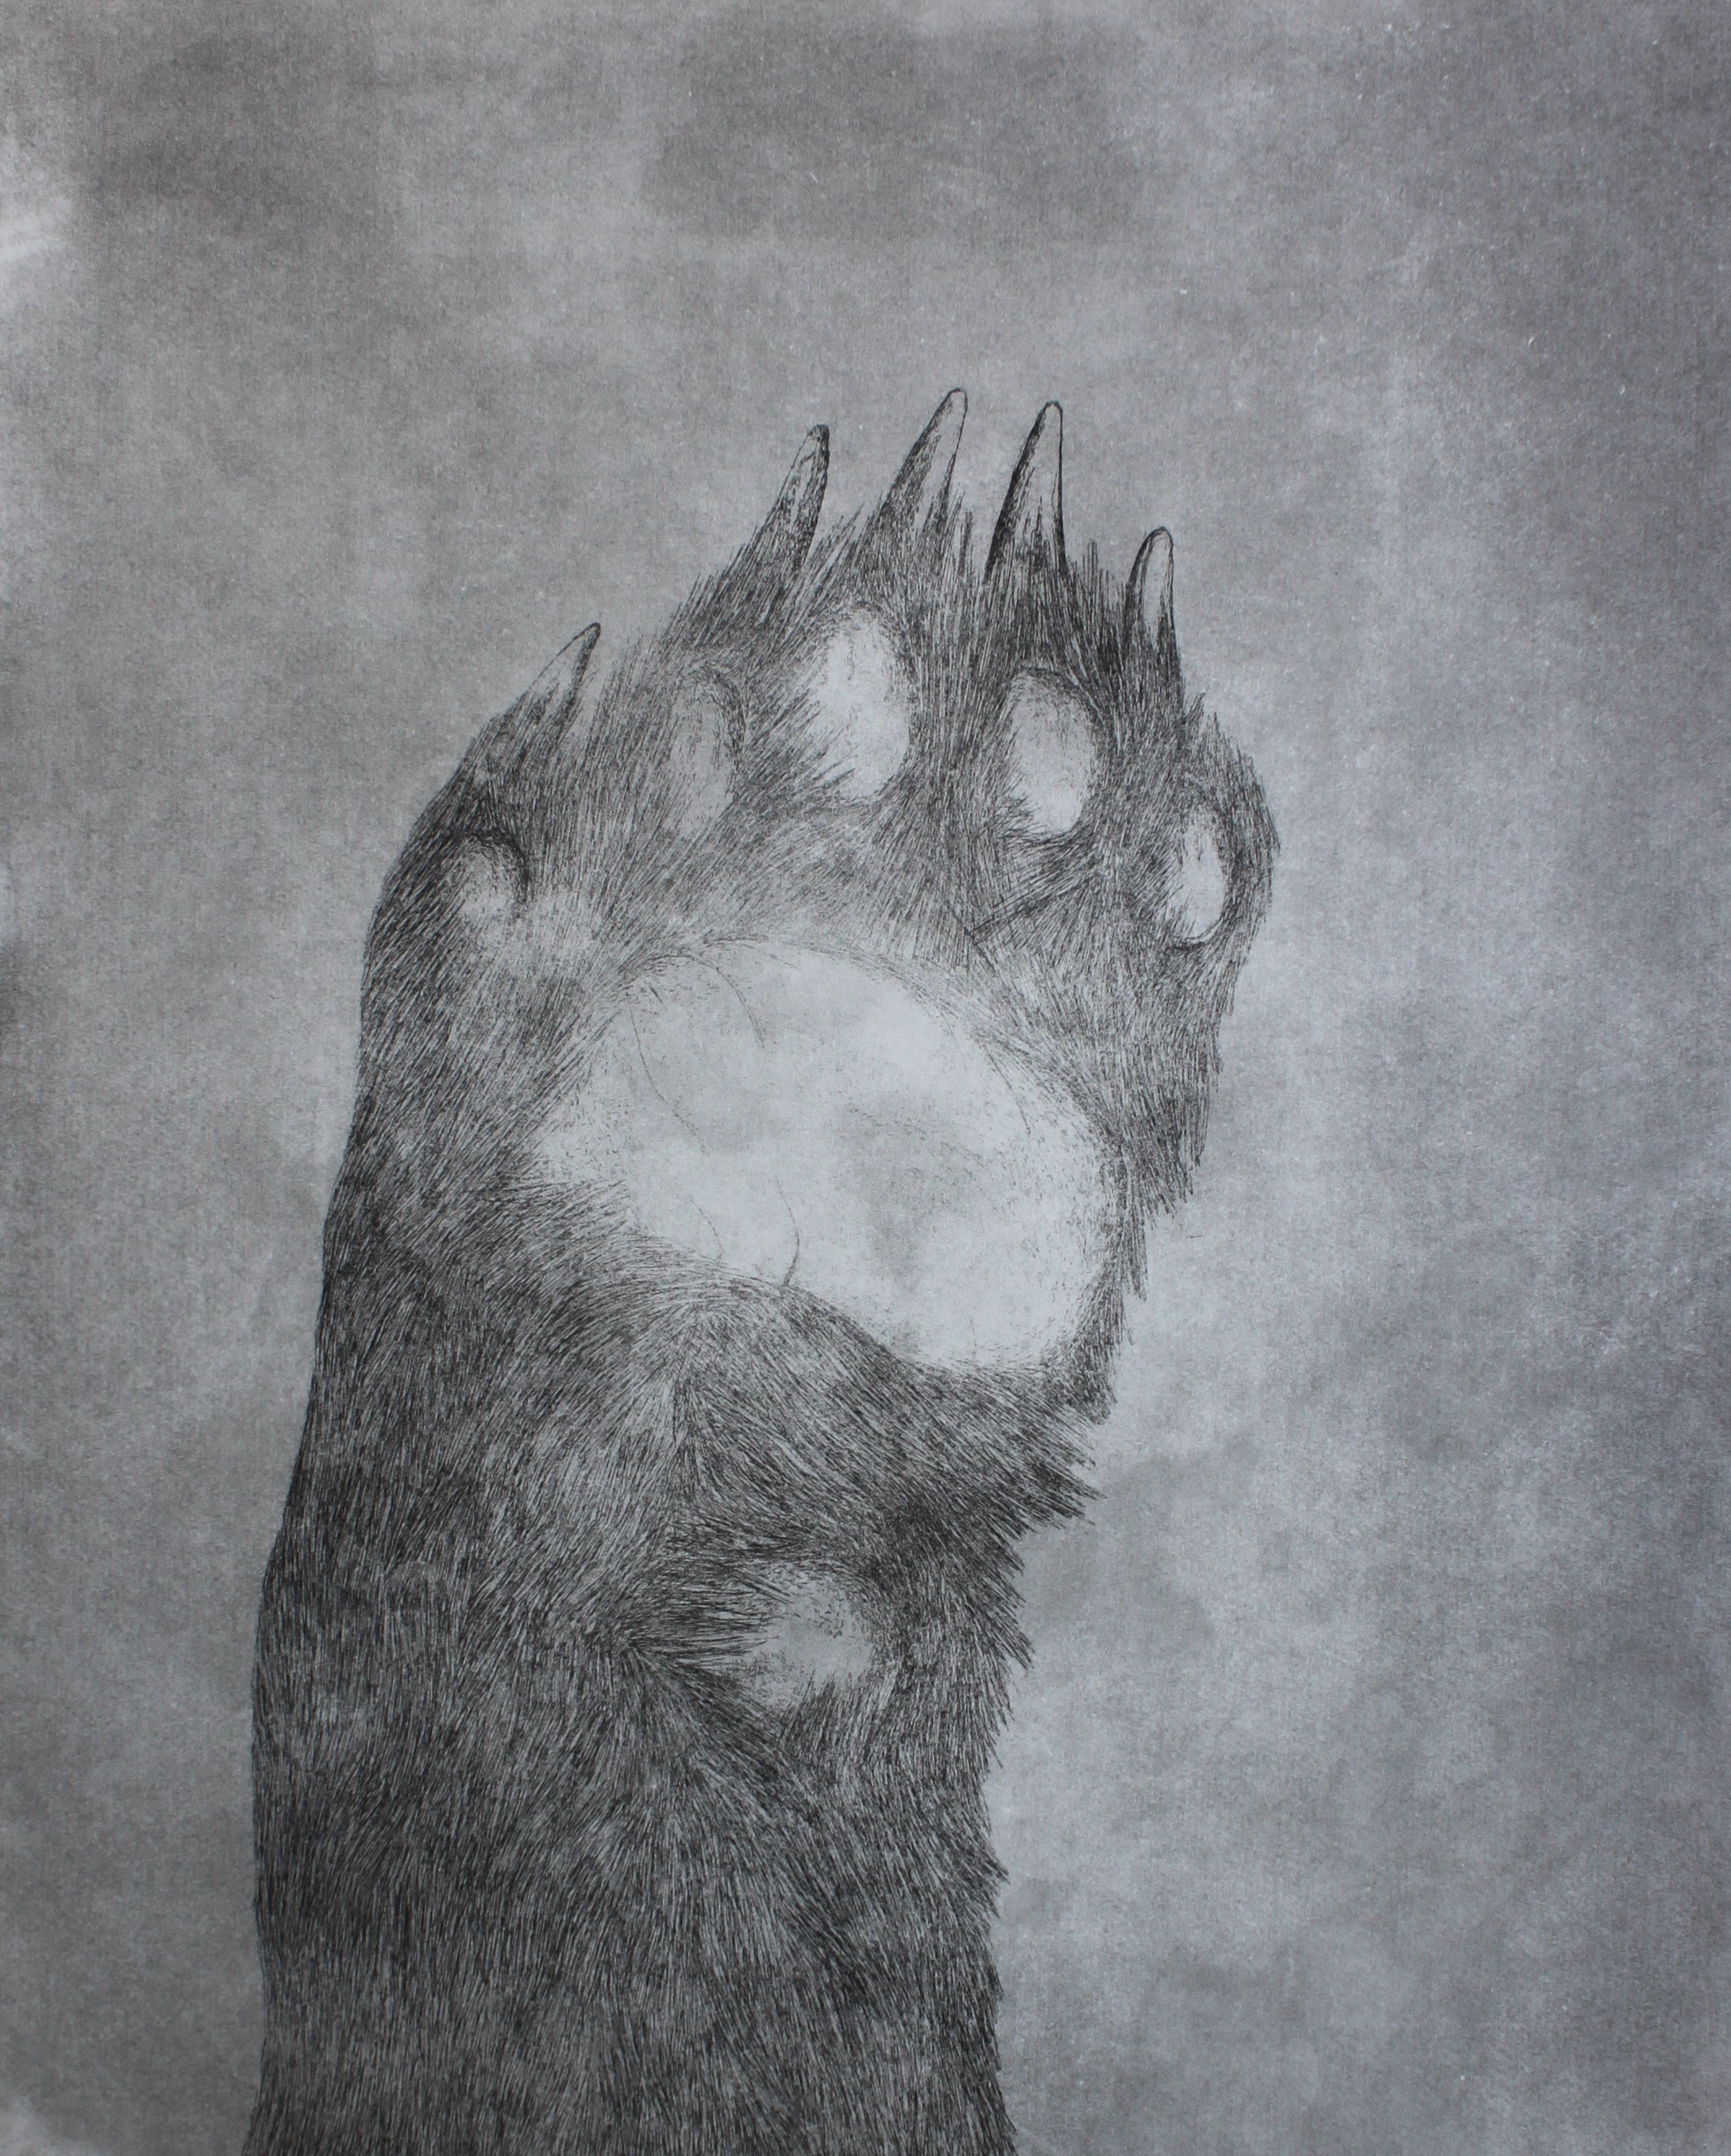 'Hello', 2016, Etching, Edition of 2, 40x50cm